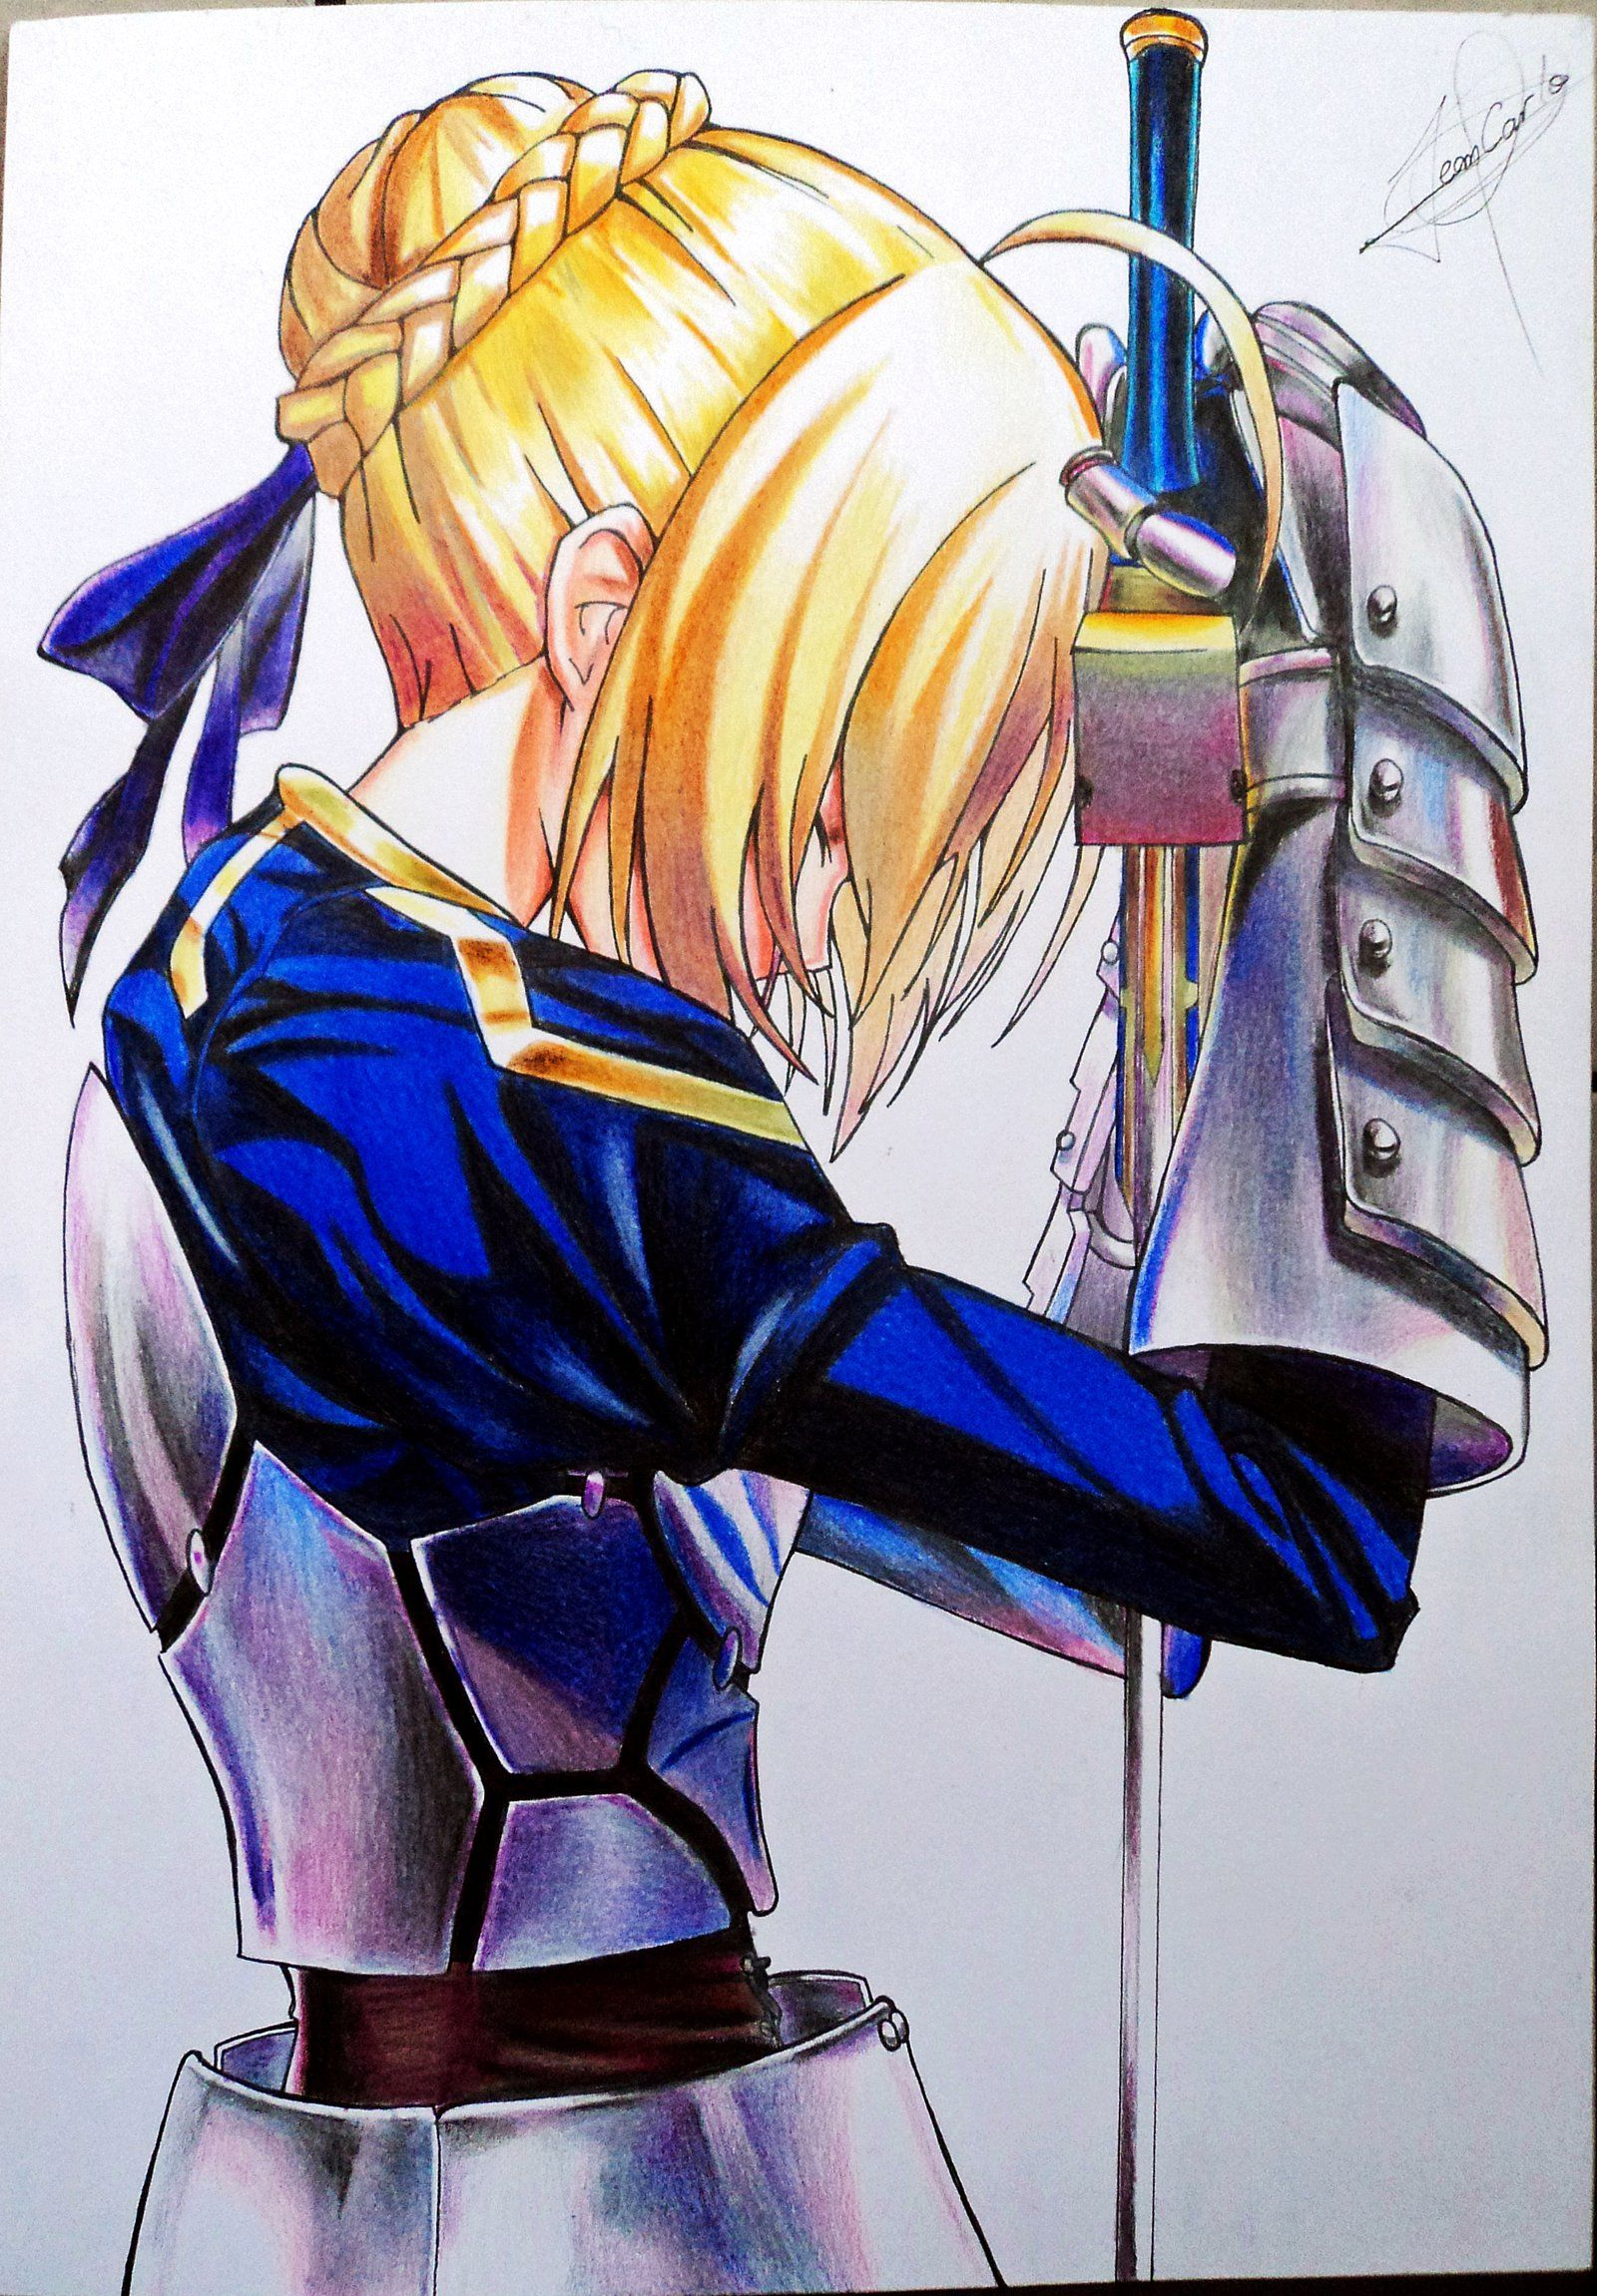 Saber Fate Stay Night by on